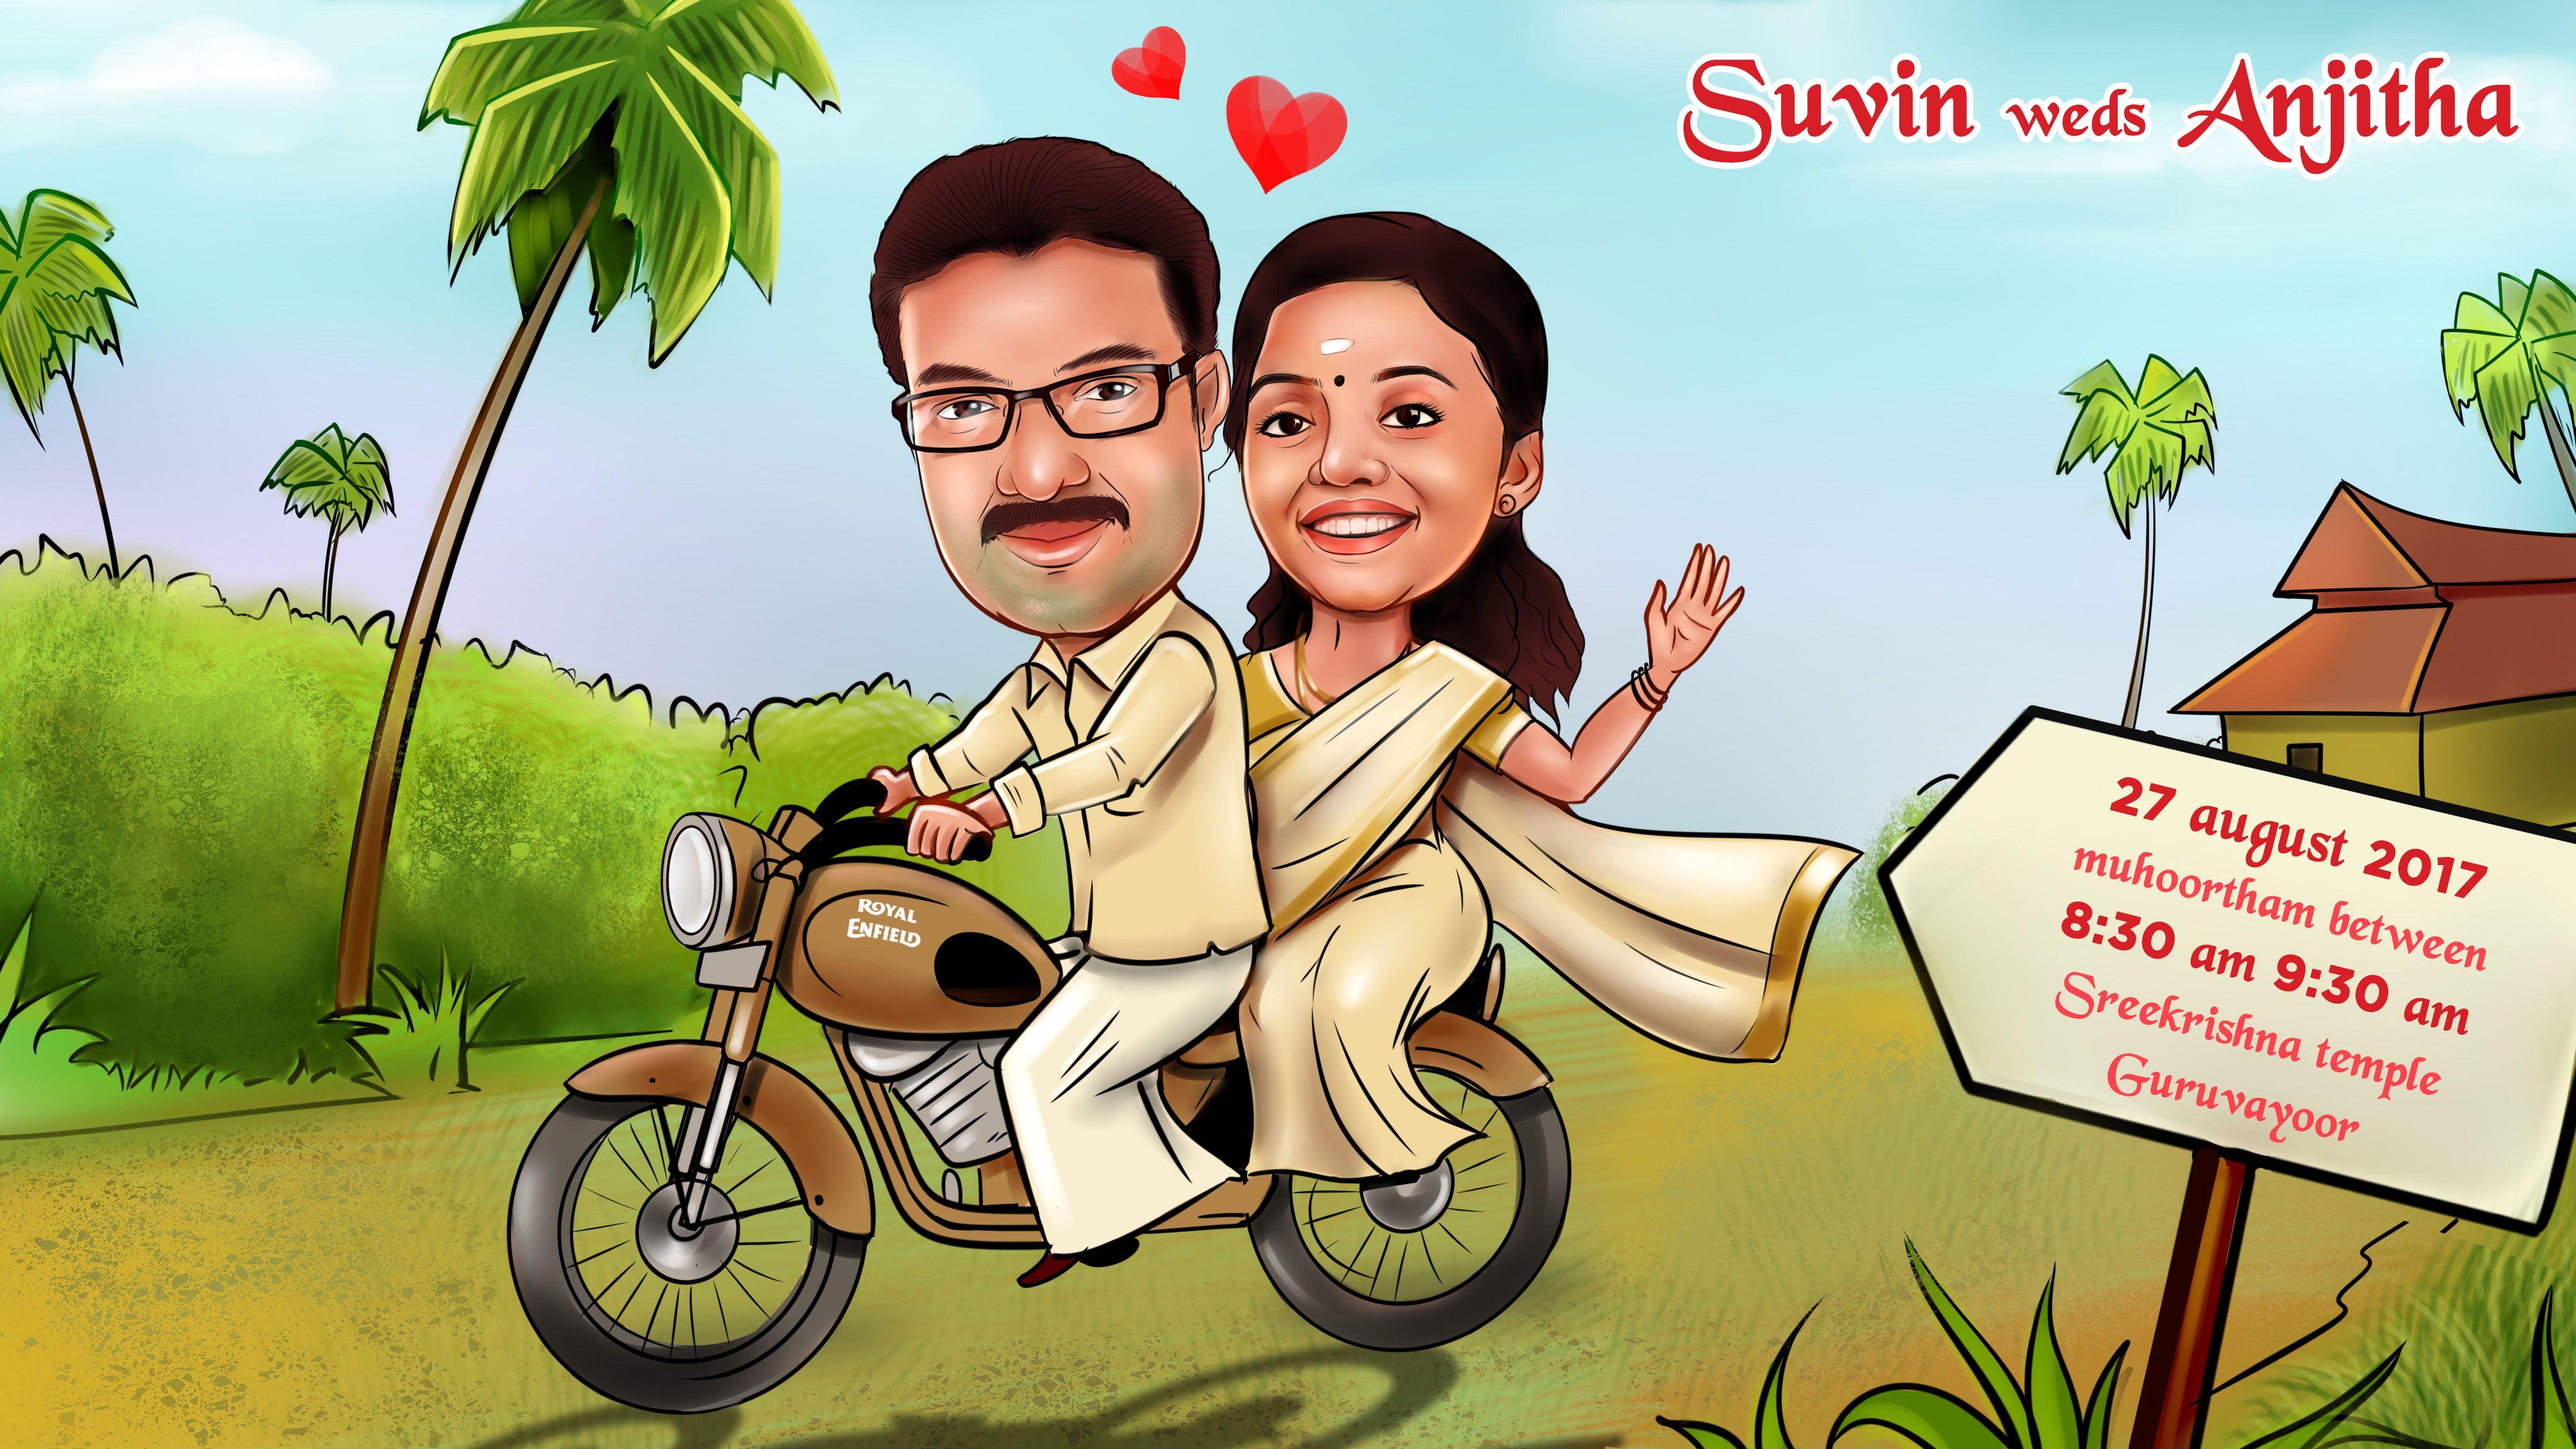 Custom Wedding Caricatures /for invitation/save the date